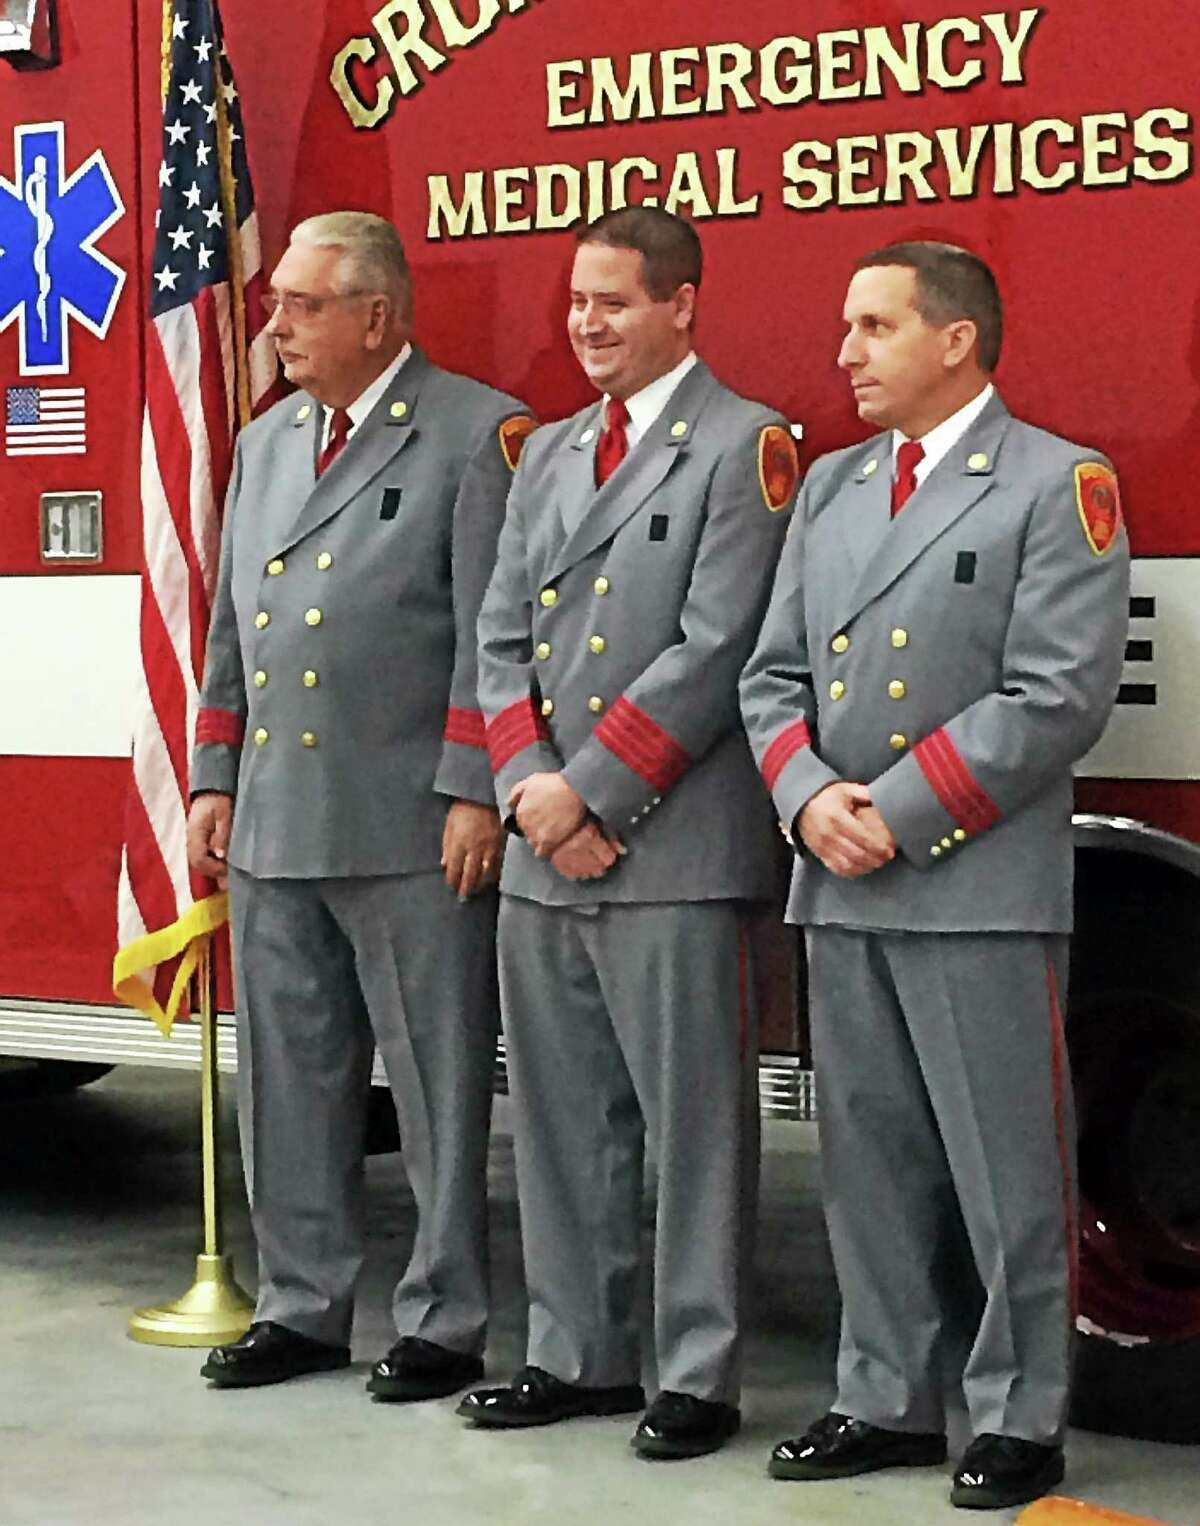 Michael Salonia, 14-year veteran of the Cromwell Fire Department, was installed as deputy chief Monday, along with William Clare as assistant chief of emergency management services and Thomas Duff assistant fire chief.